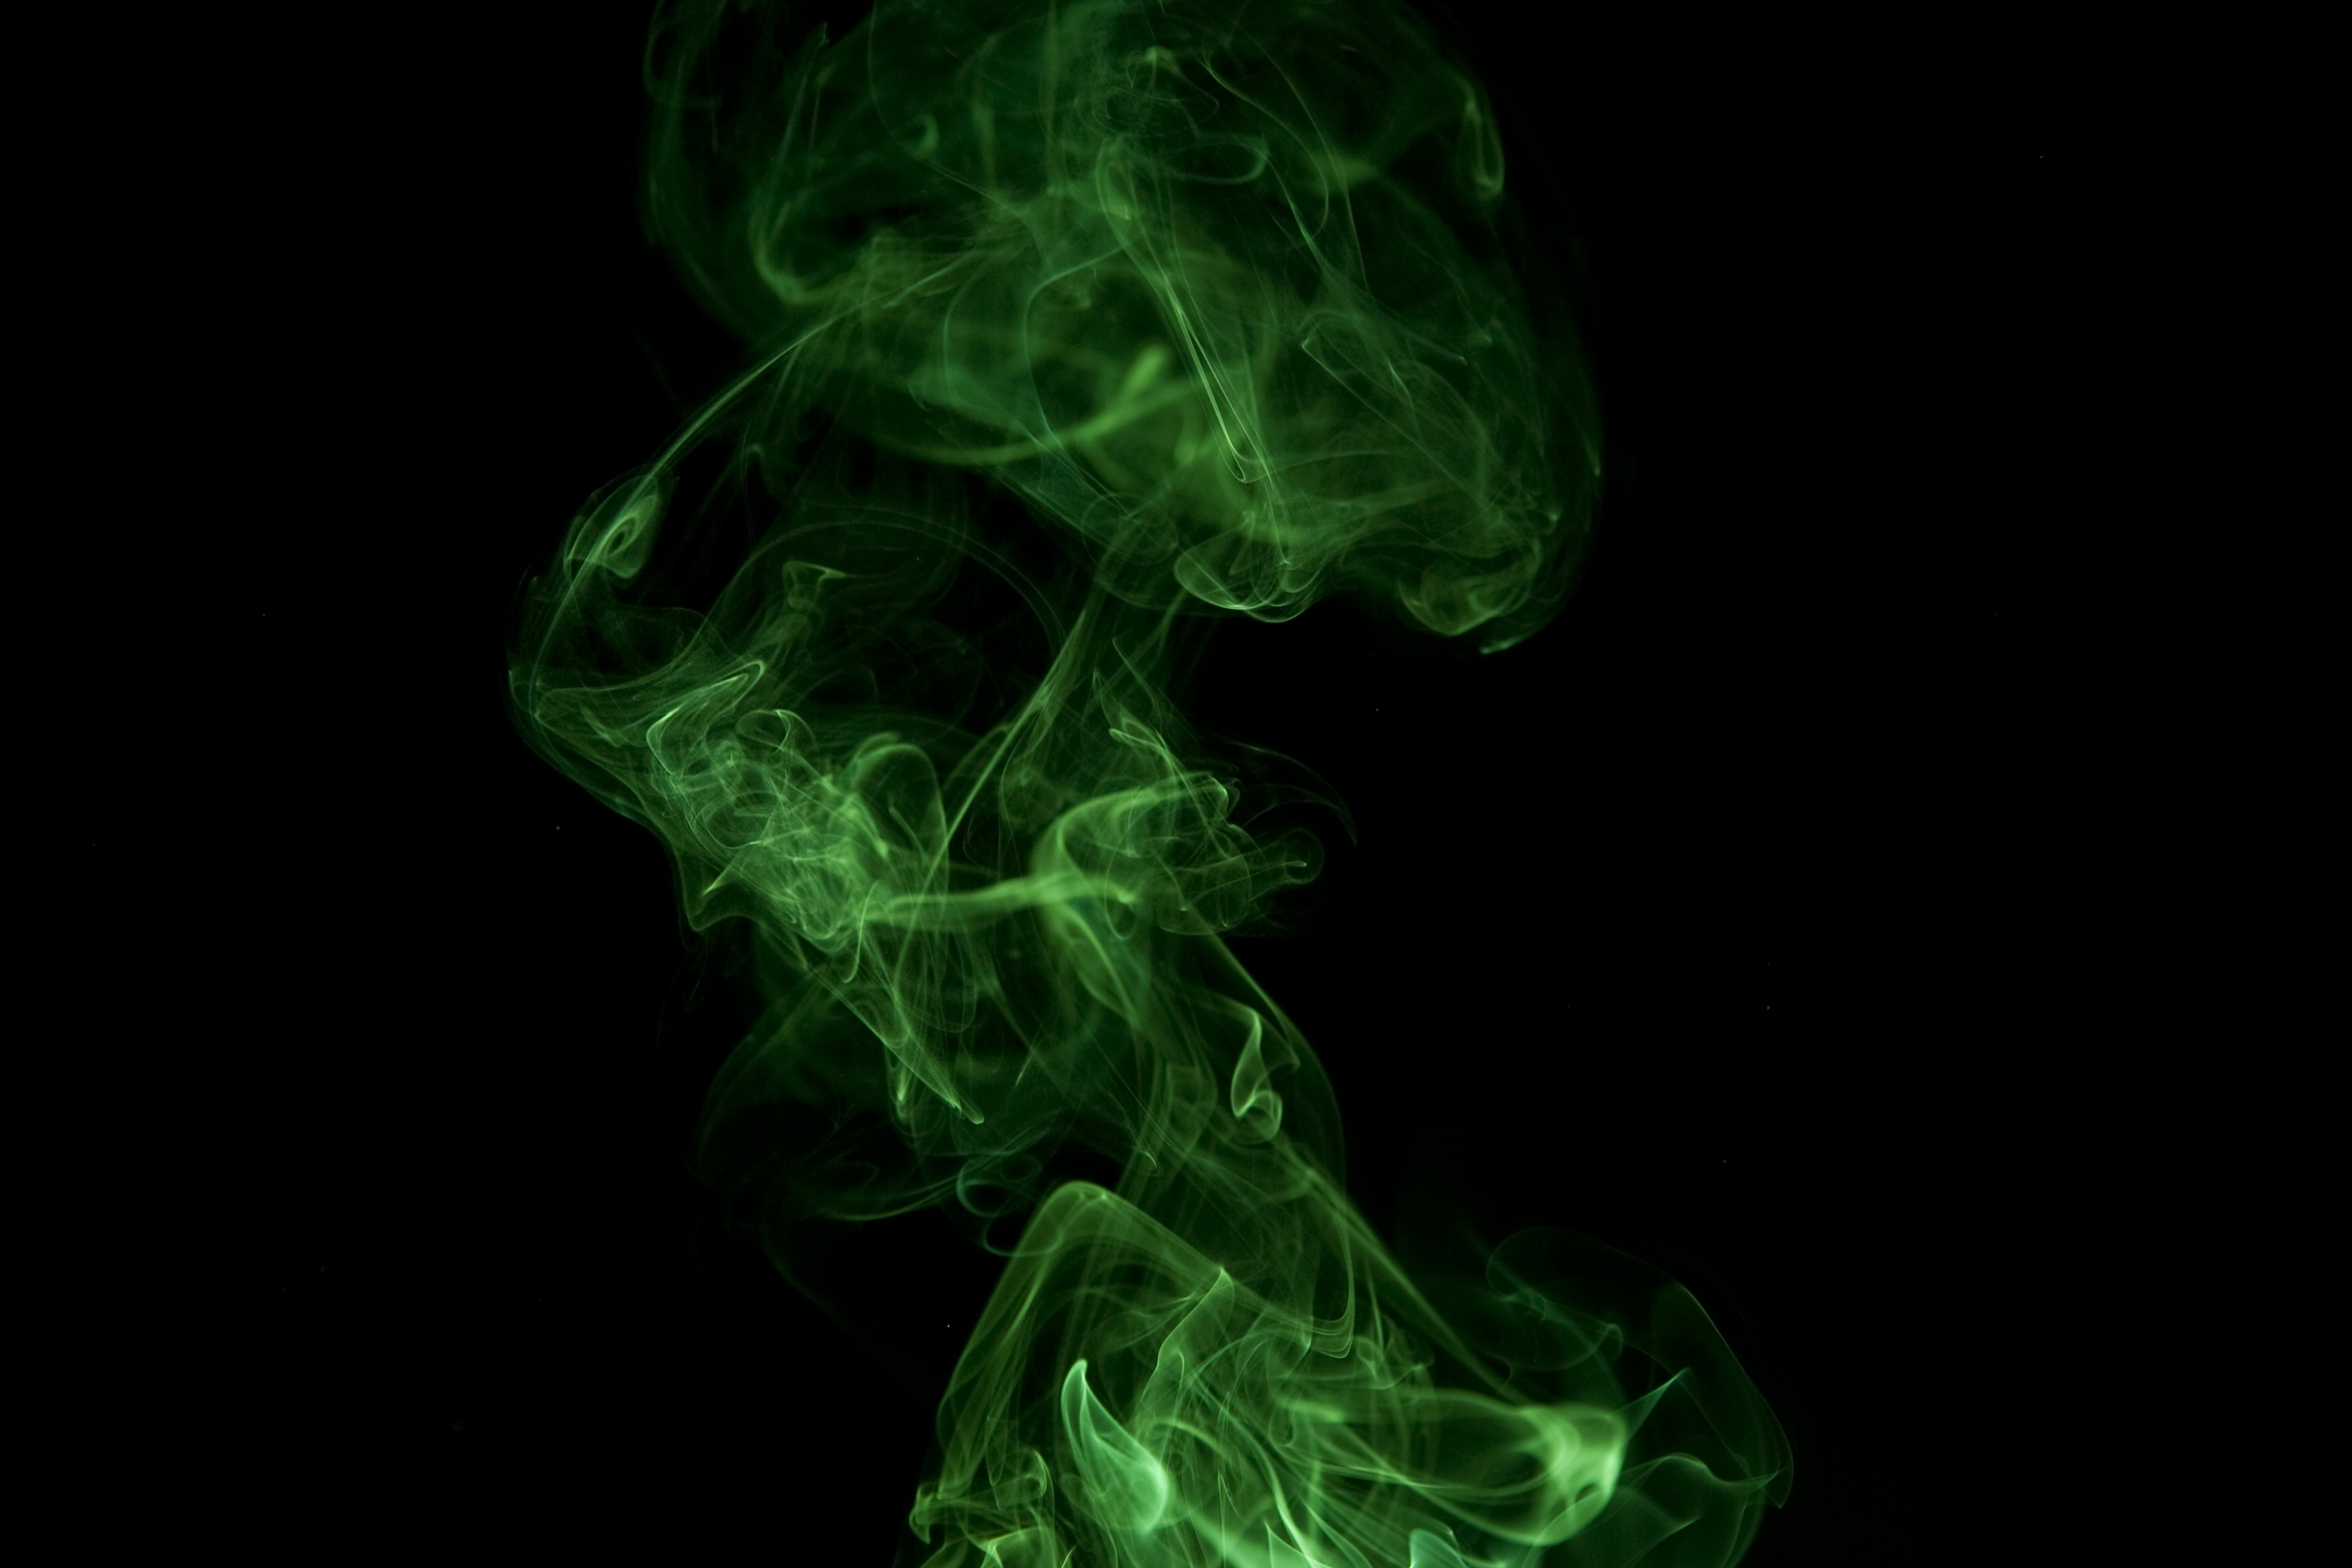 Black Smoke Background Images